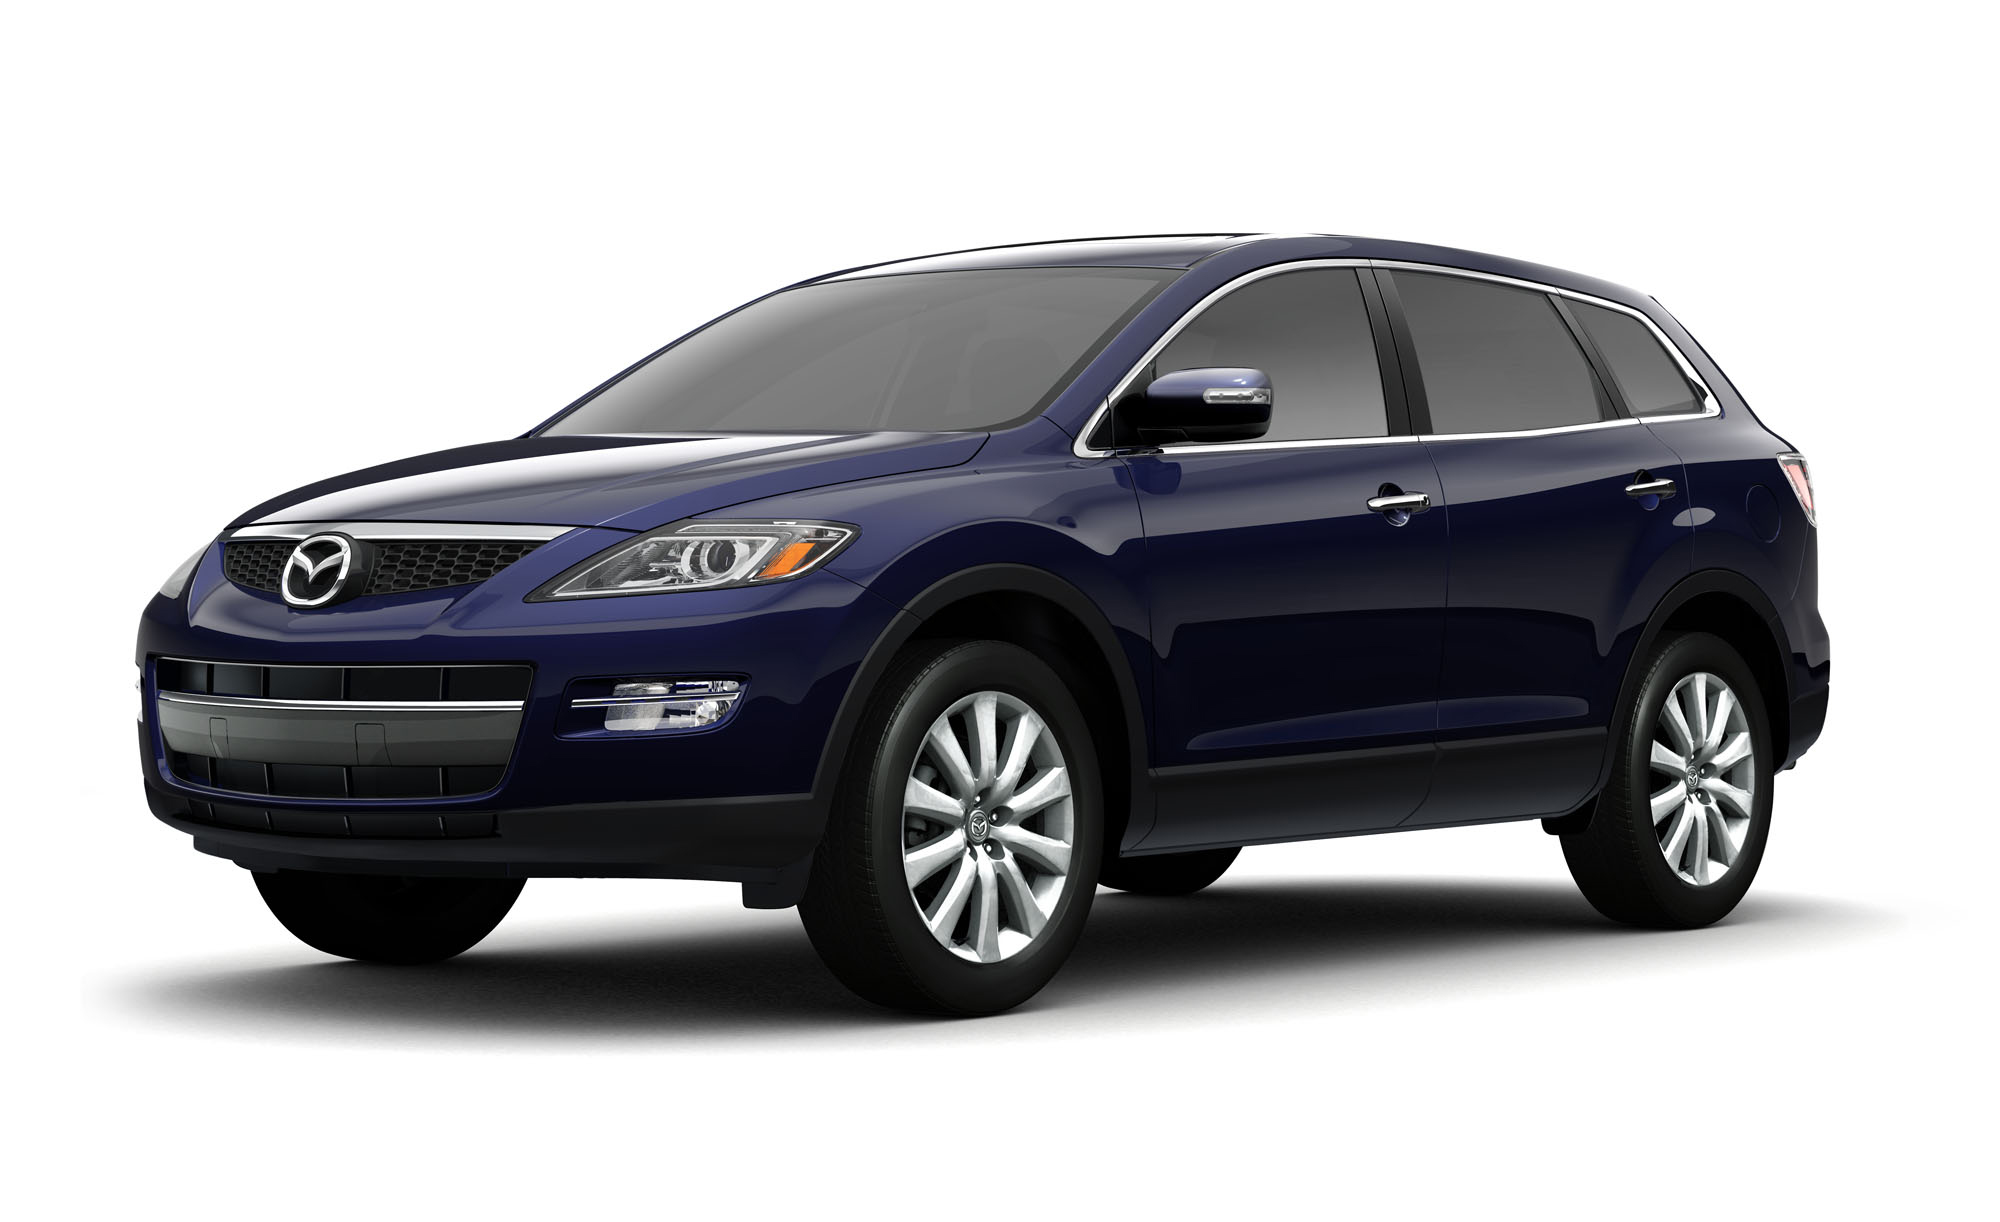 2007 mazda cx 9 crossover review gallery top speed. Black Bedroom Furniture Sets. Home Design Ideas